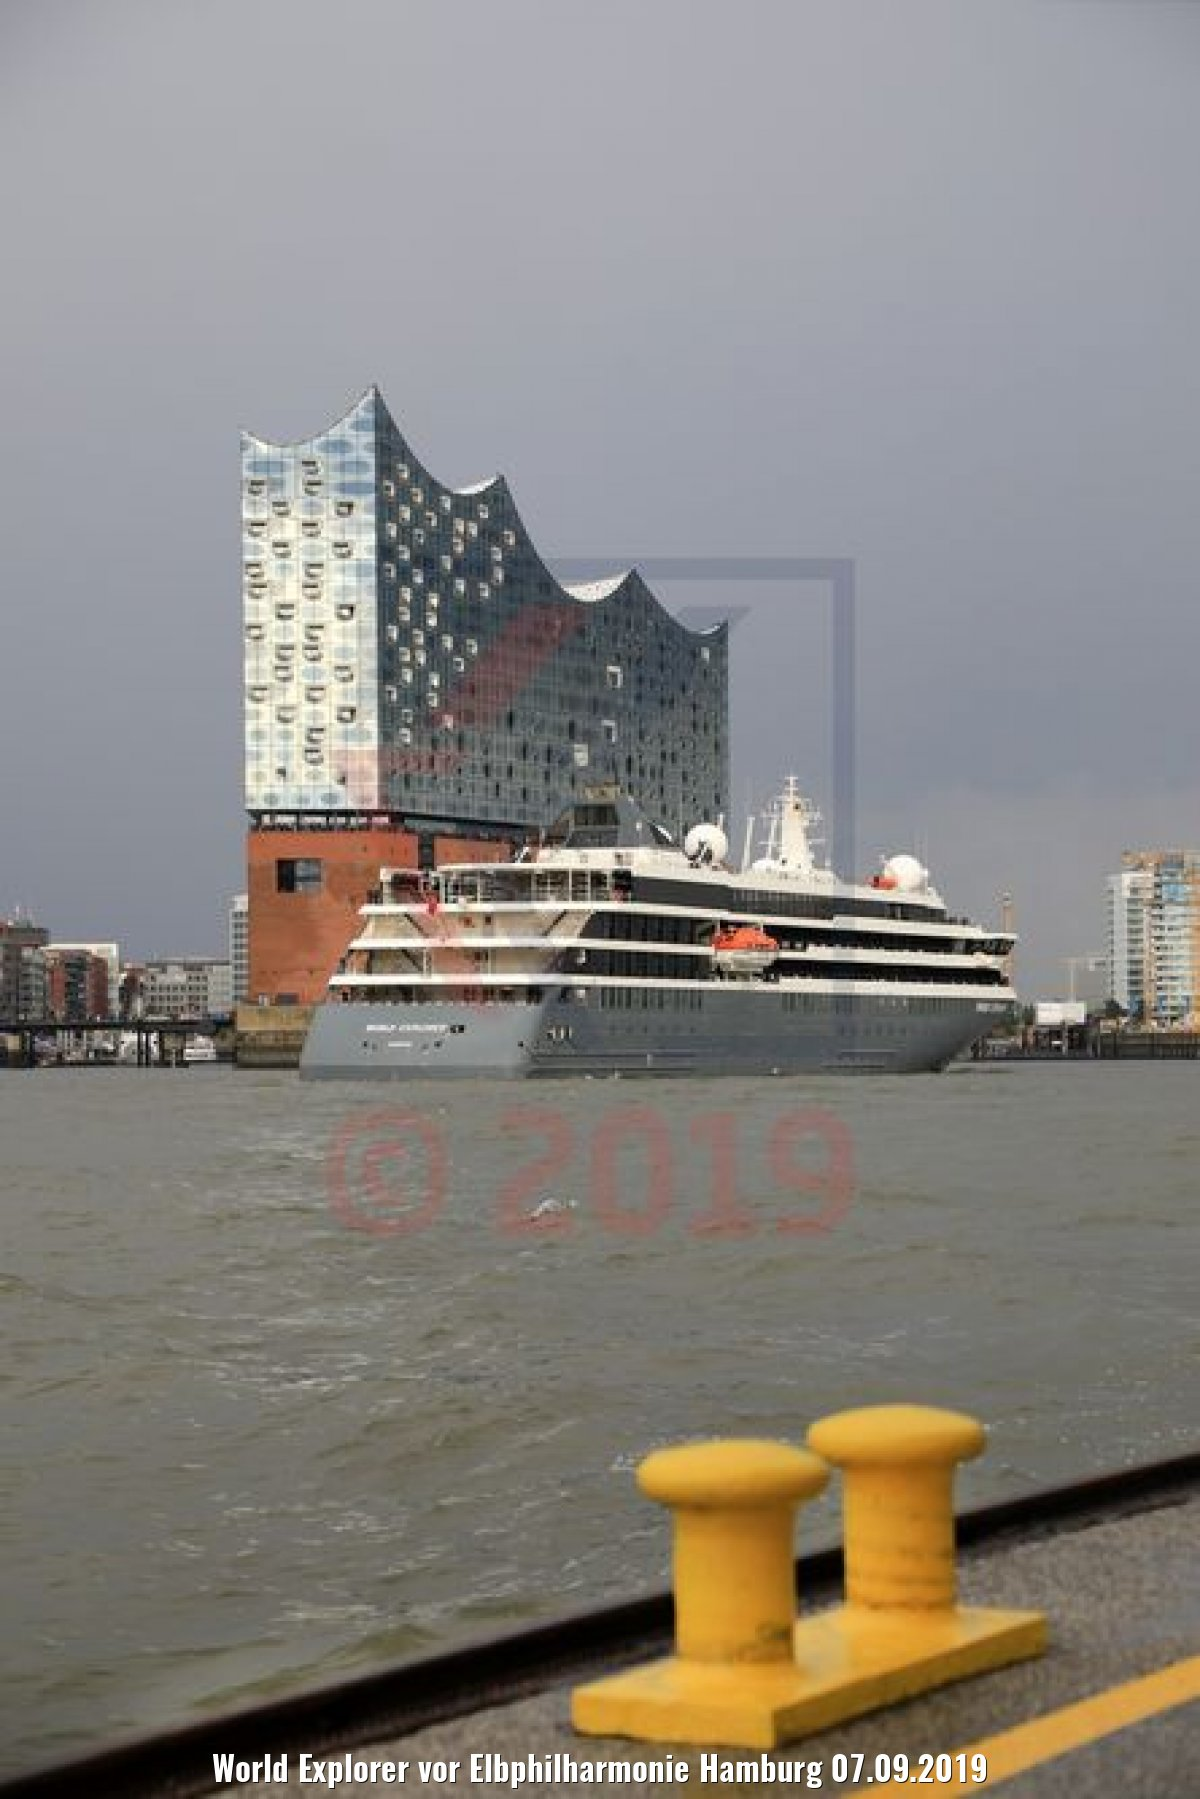 World Explorer vor Elbphilharmonie Hamburg 07.09.2019